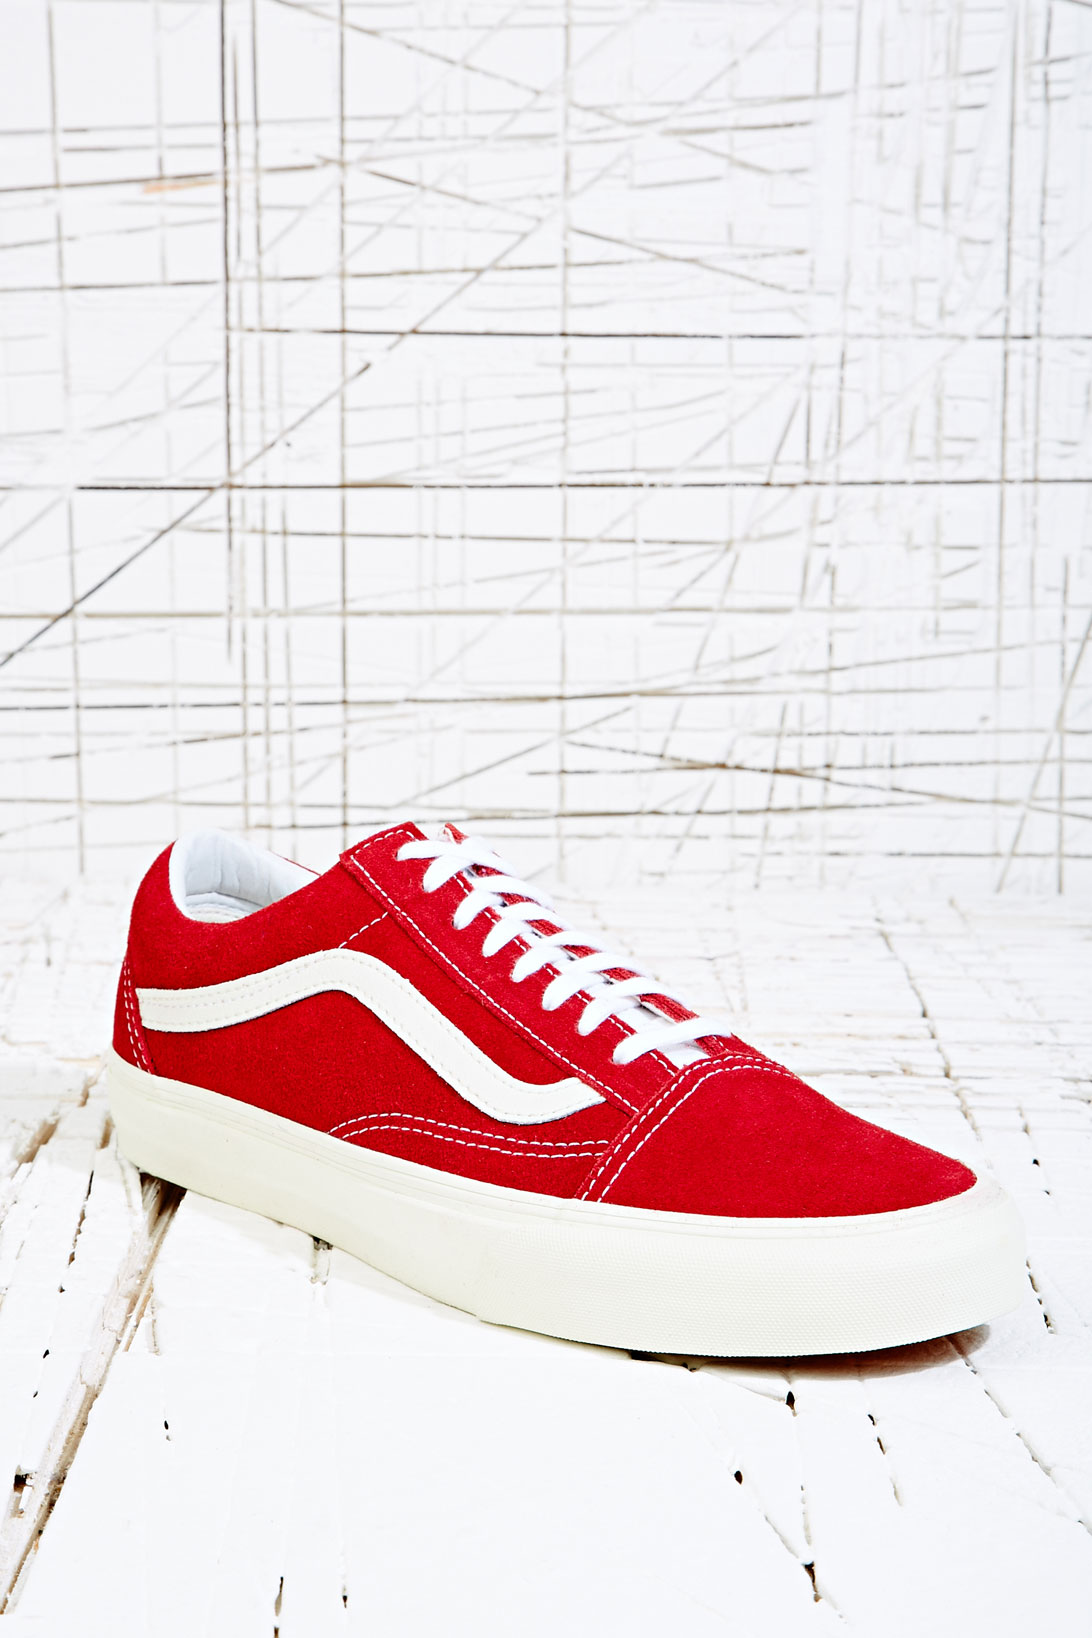 d8aad7a13f Vans Old Skool Vintage Trainers in Rio Red in Red for Men - Lyst